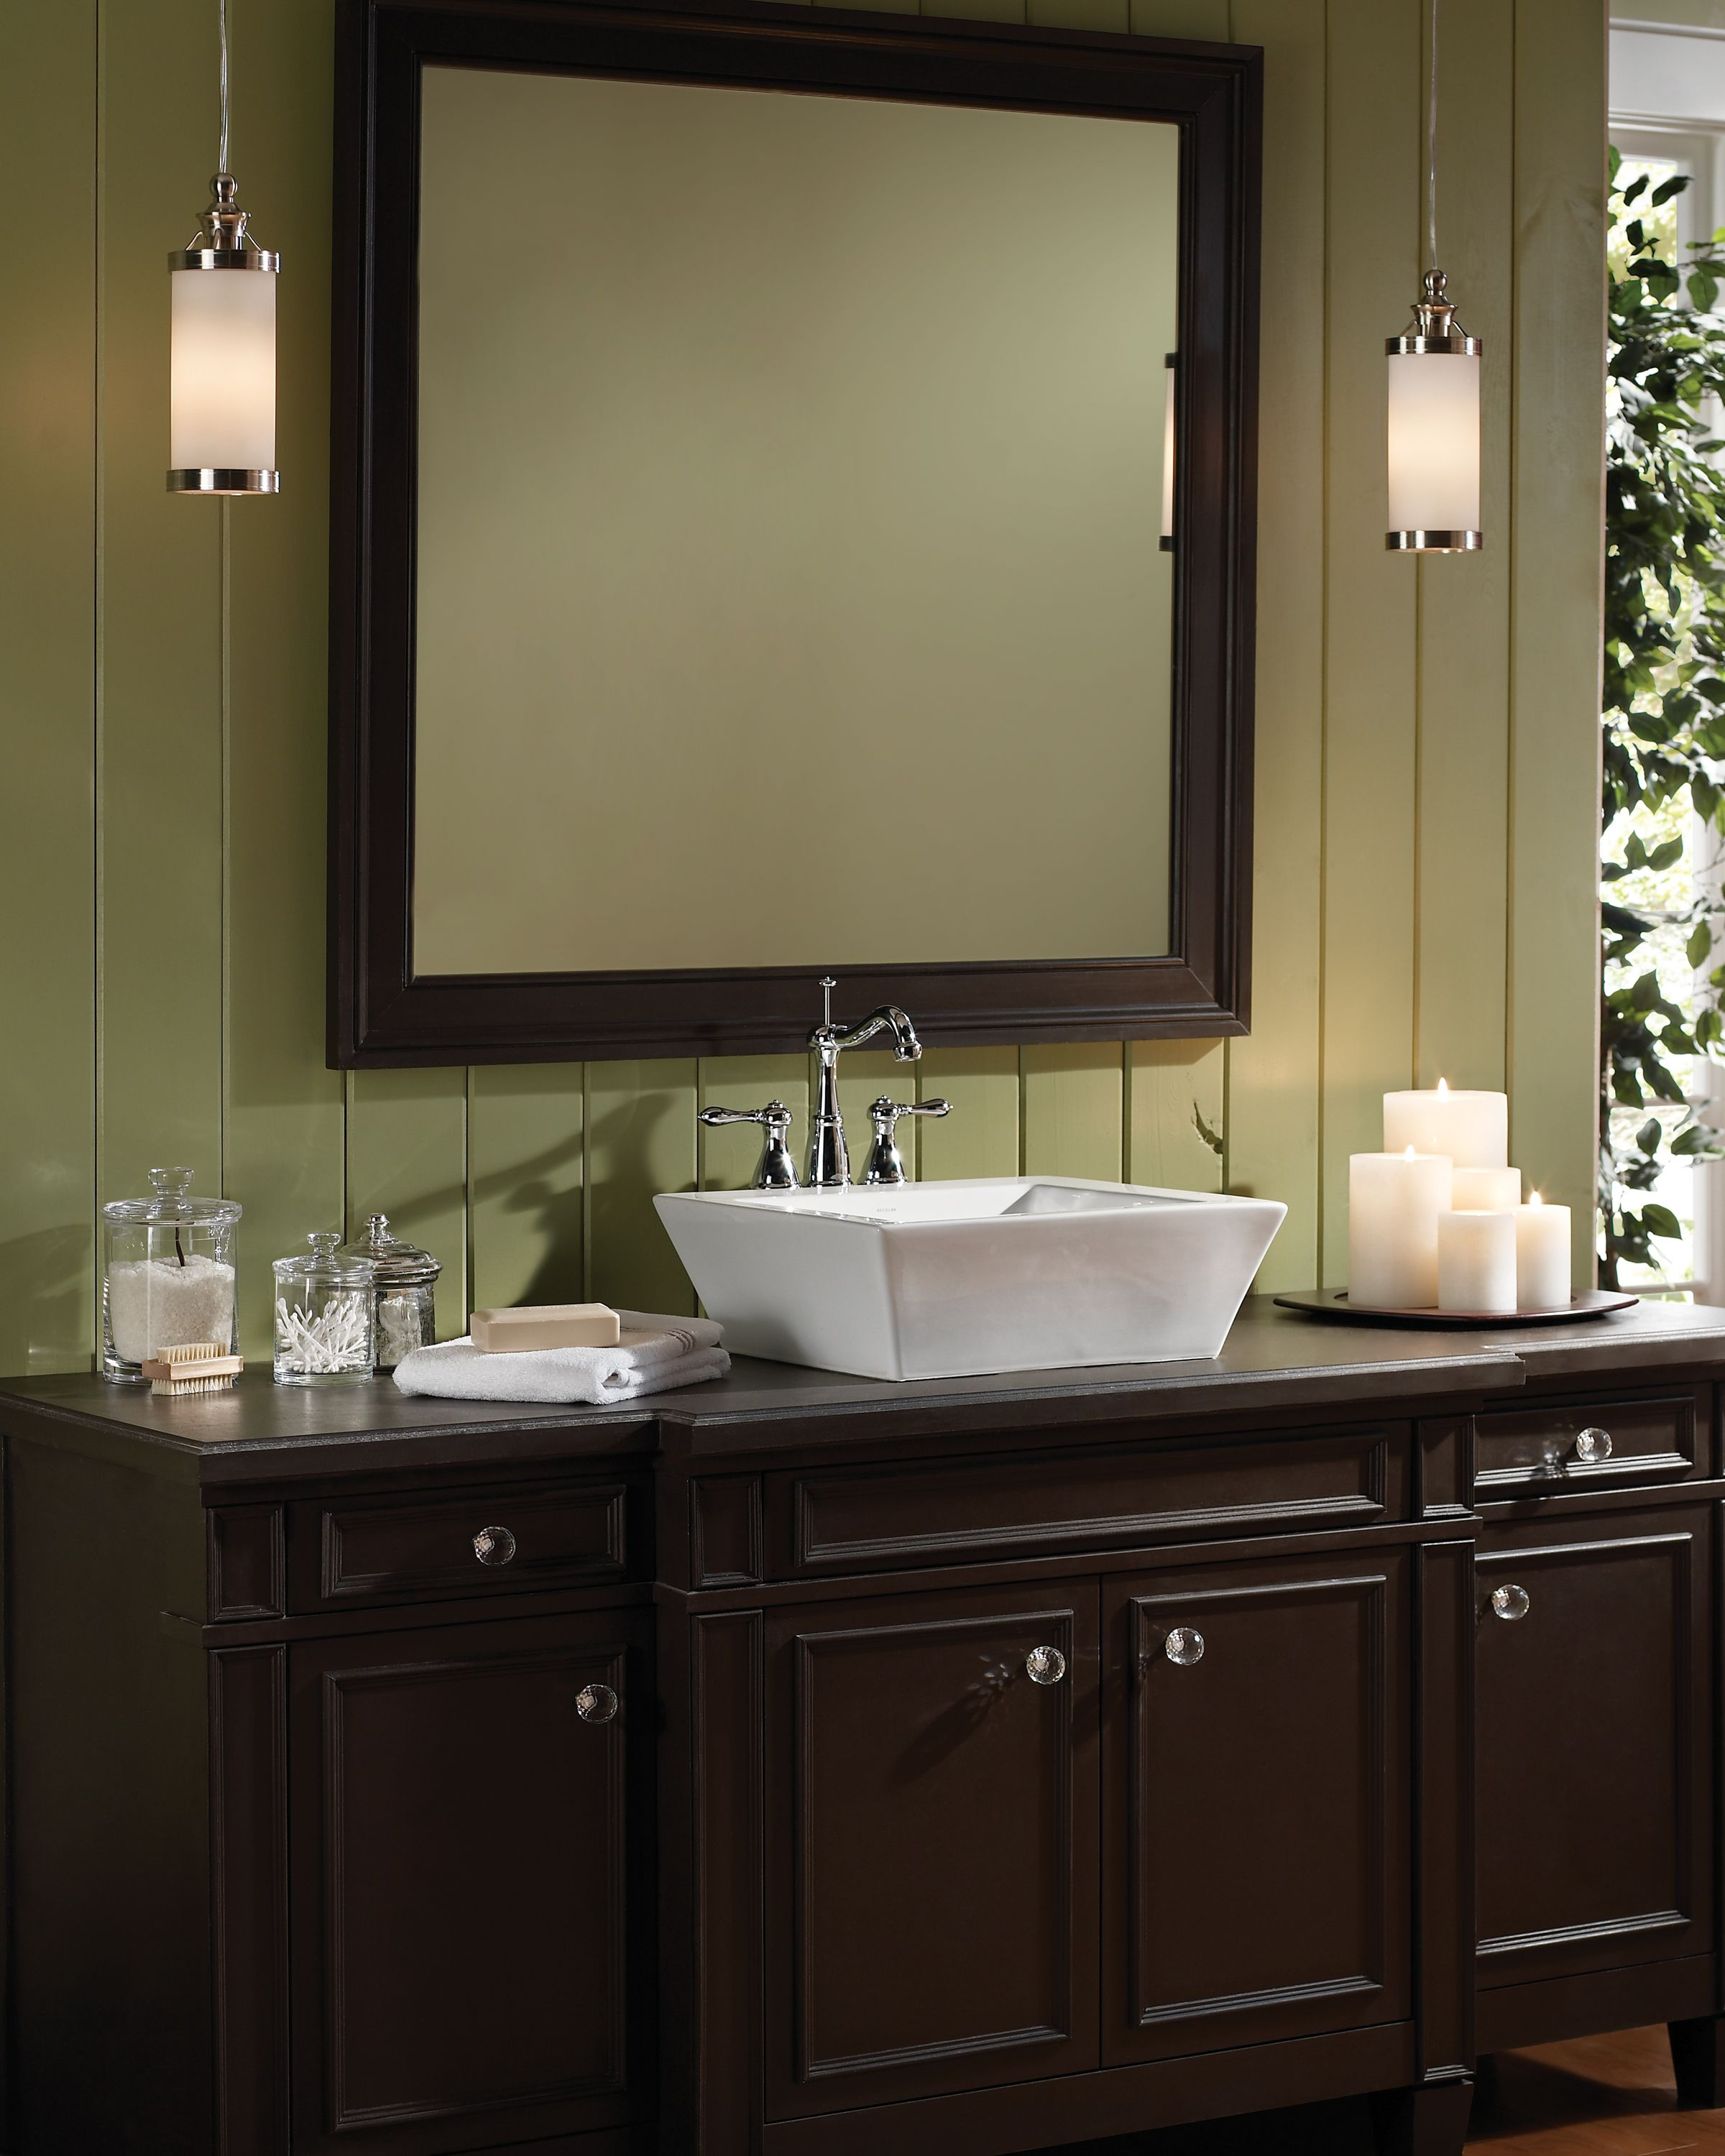 Bridgeport #pendant By Tech #Lighting In #bathroom